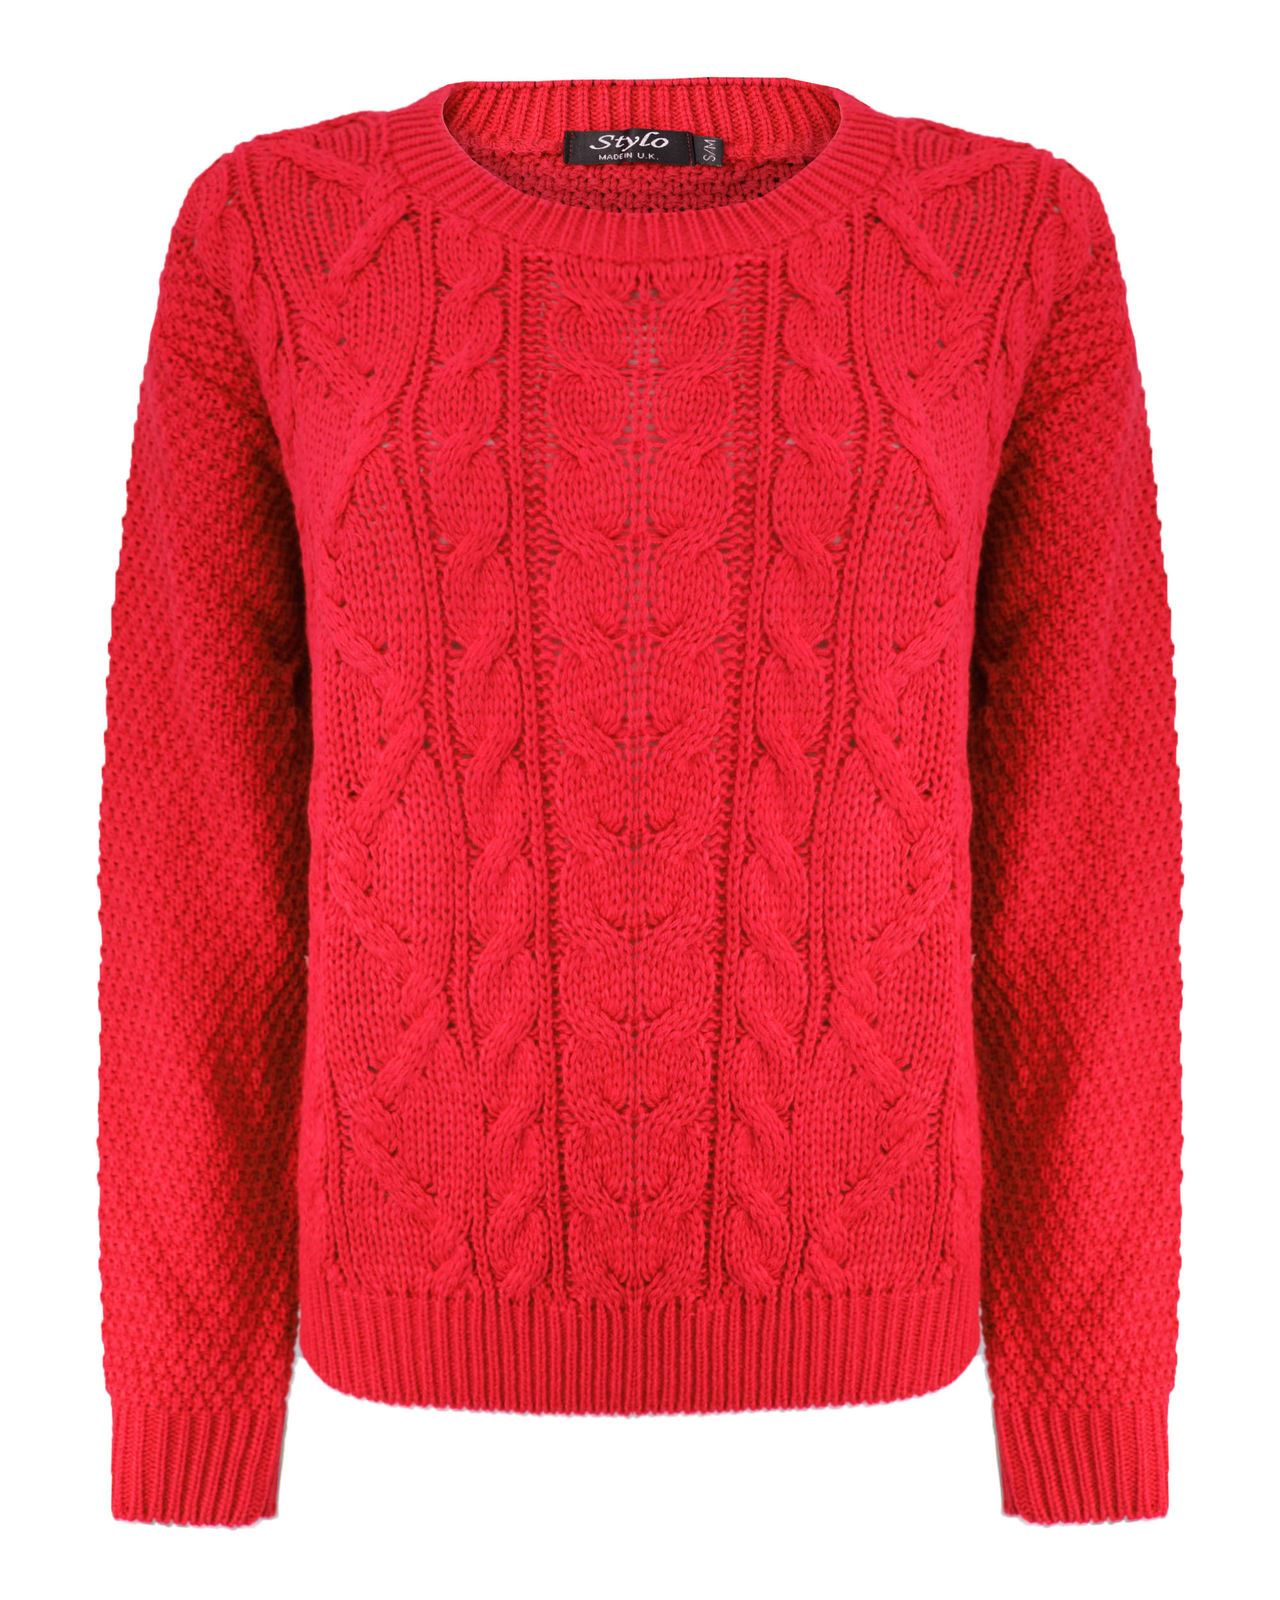 Knitting Women : Ladies women knitted long sleeve cable knit jumper baggy